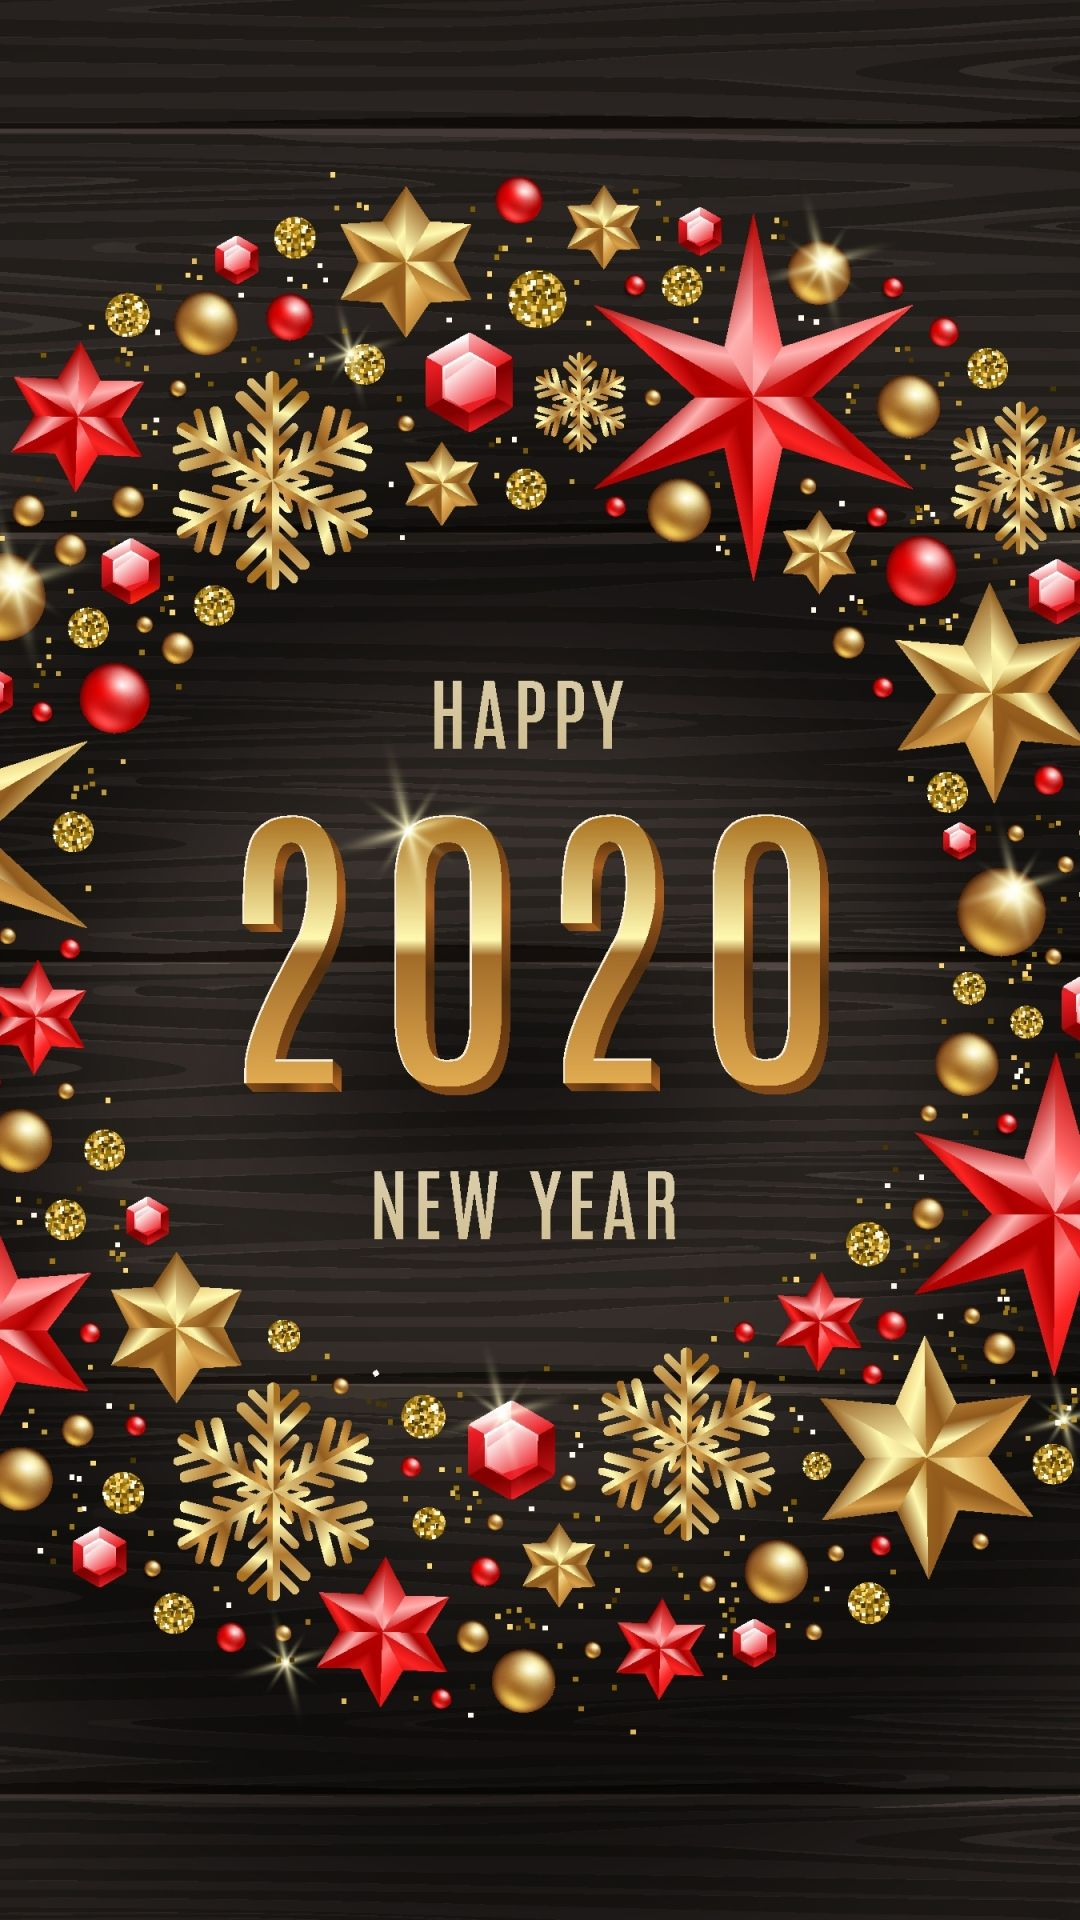 Download Happy New Year 2020 Wishes Wallpapernbsp nbsp for 1080x1920